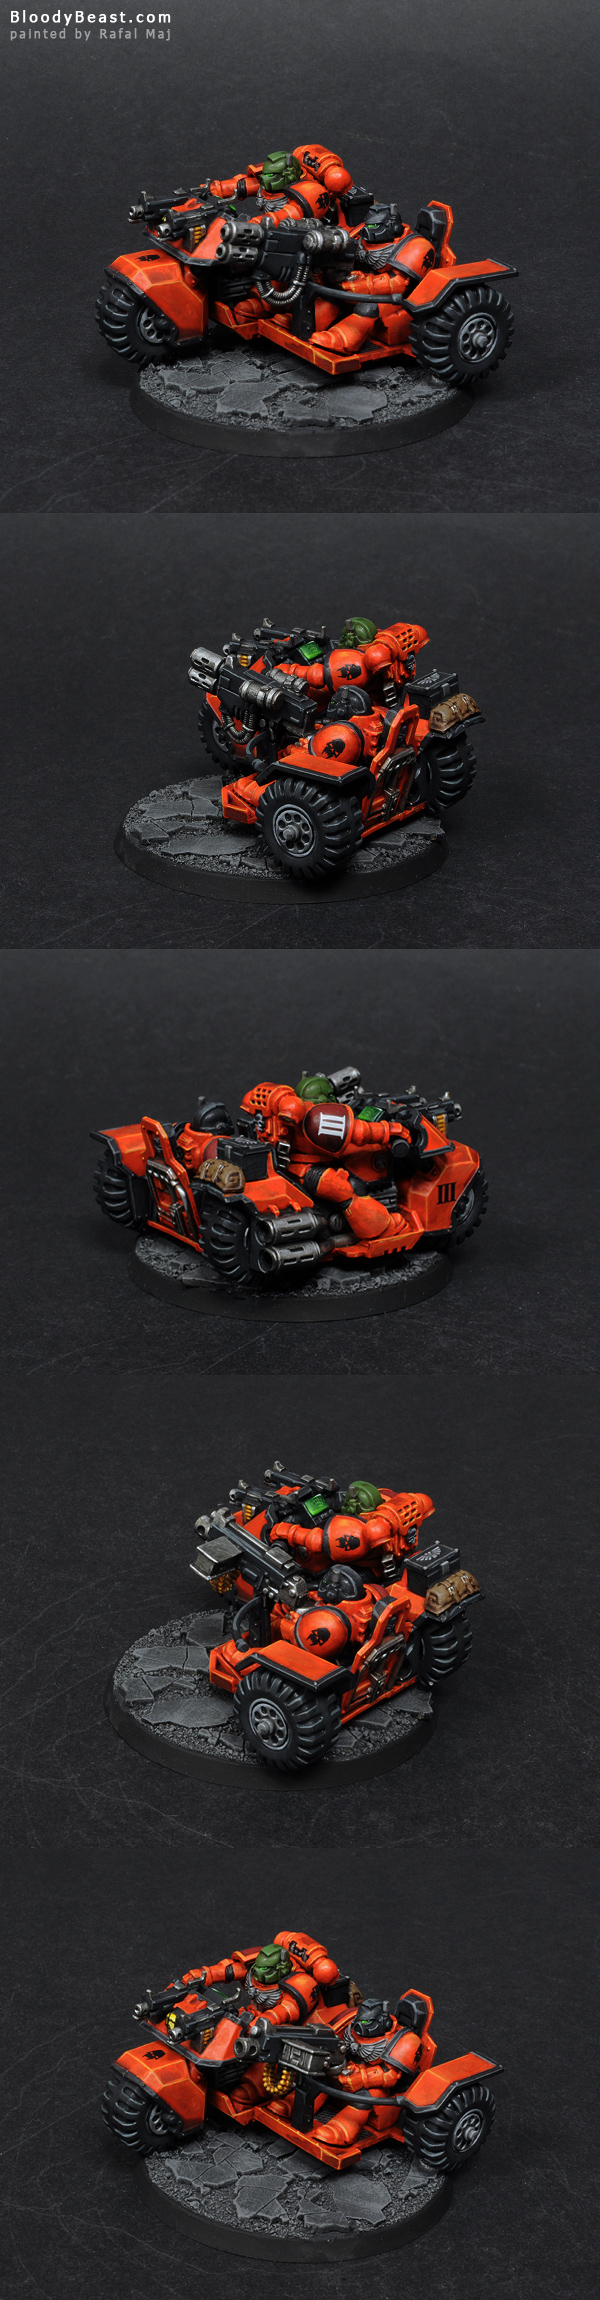 Astral Tigers Assault Bike painted by Rafal Maj (BloodyBeast.com)